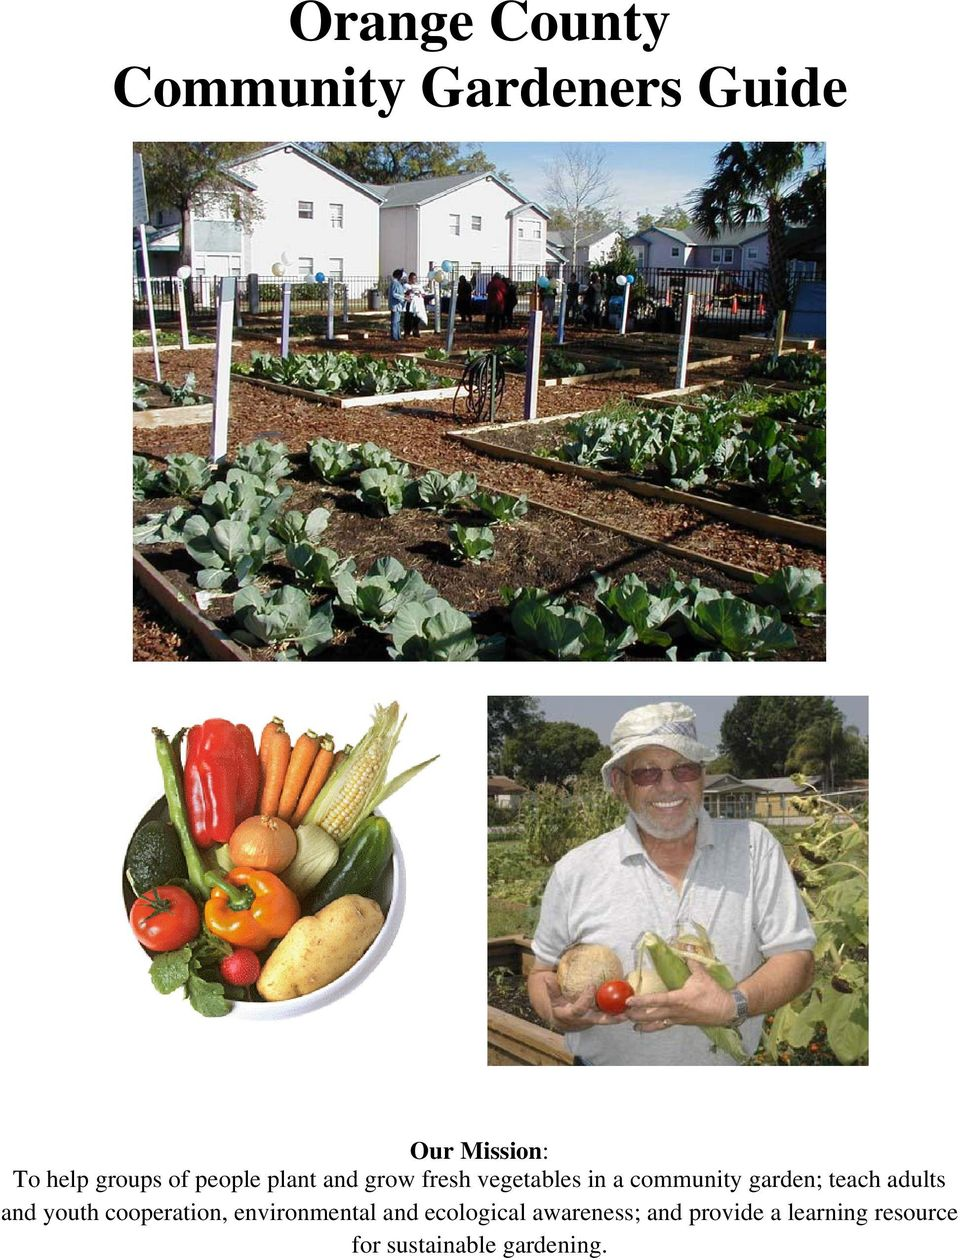 garden; teach adults and youth cooperation, environmental and